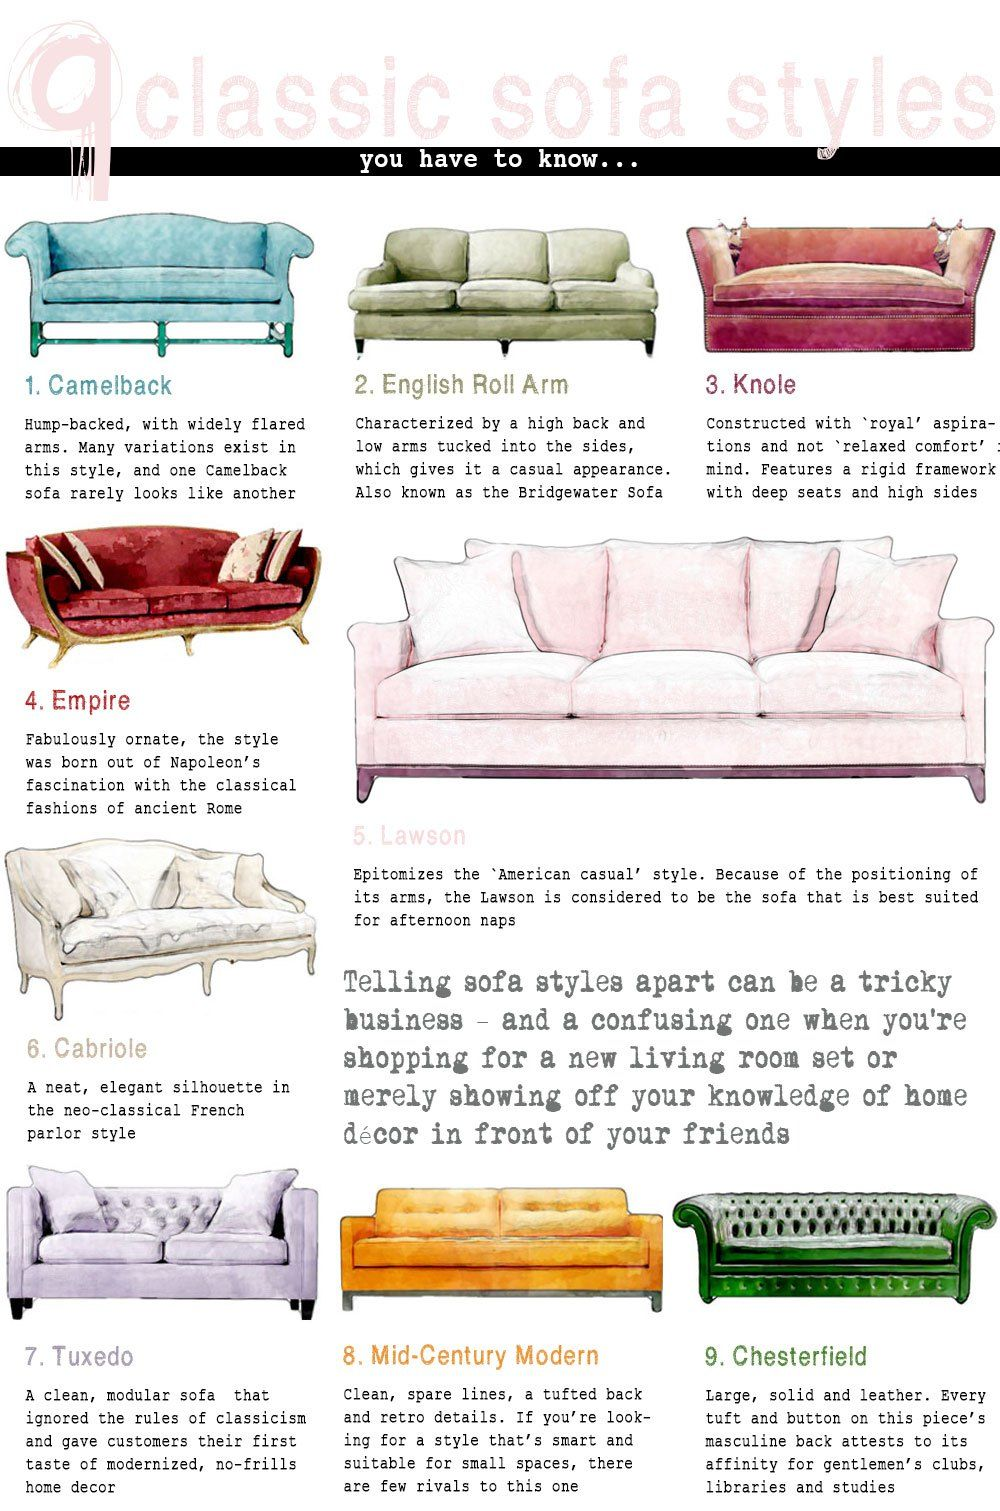 Couch Styles rebeccaaaaa! this whole site :d don't go shopping for living room